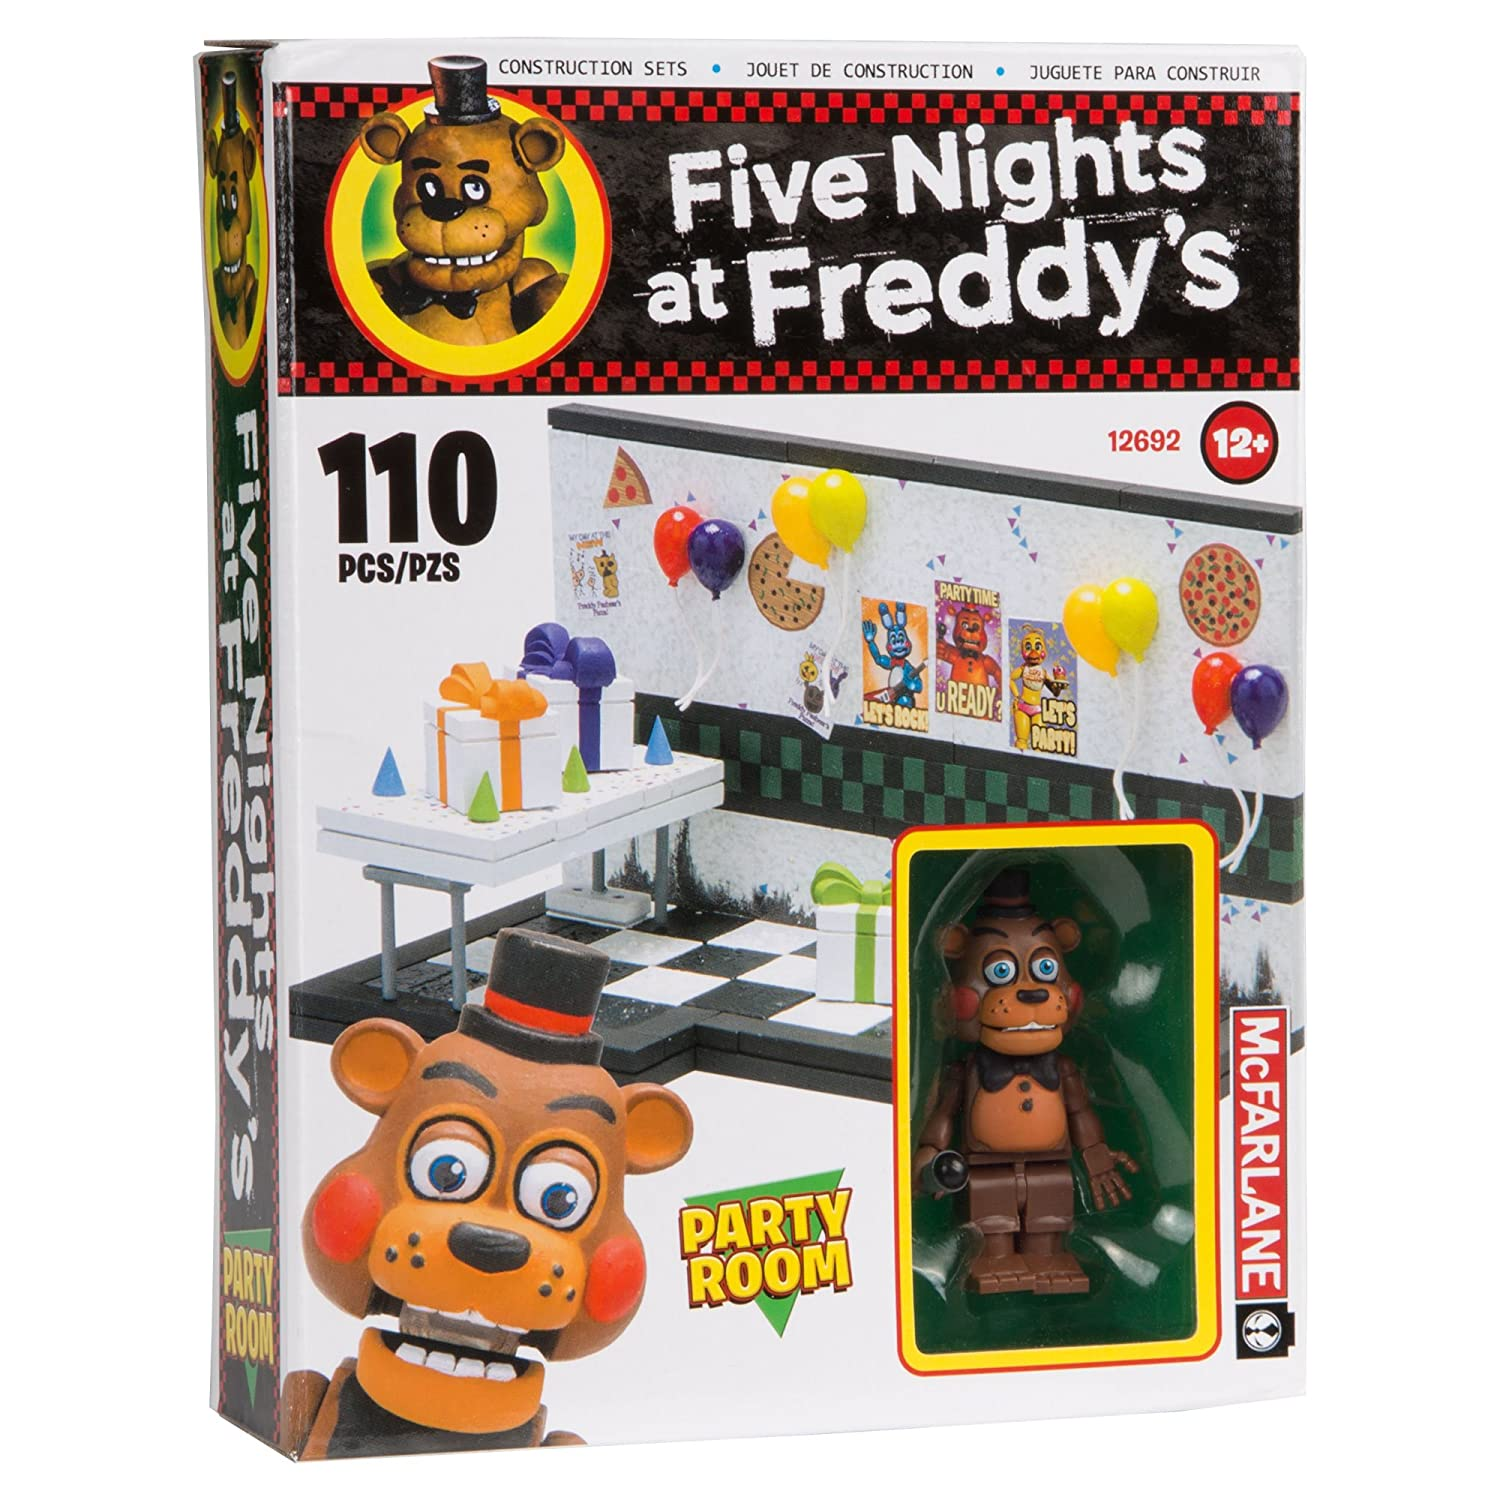 Amazon.com: McFarlane Toys Five Nights At Freddy's Party Room Construction Building Kit: Toys & Games